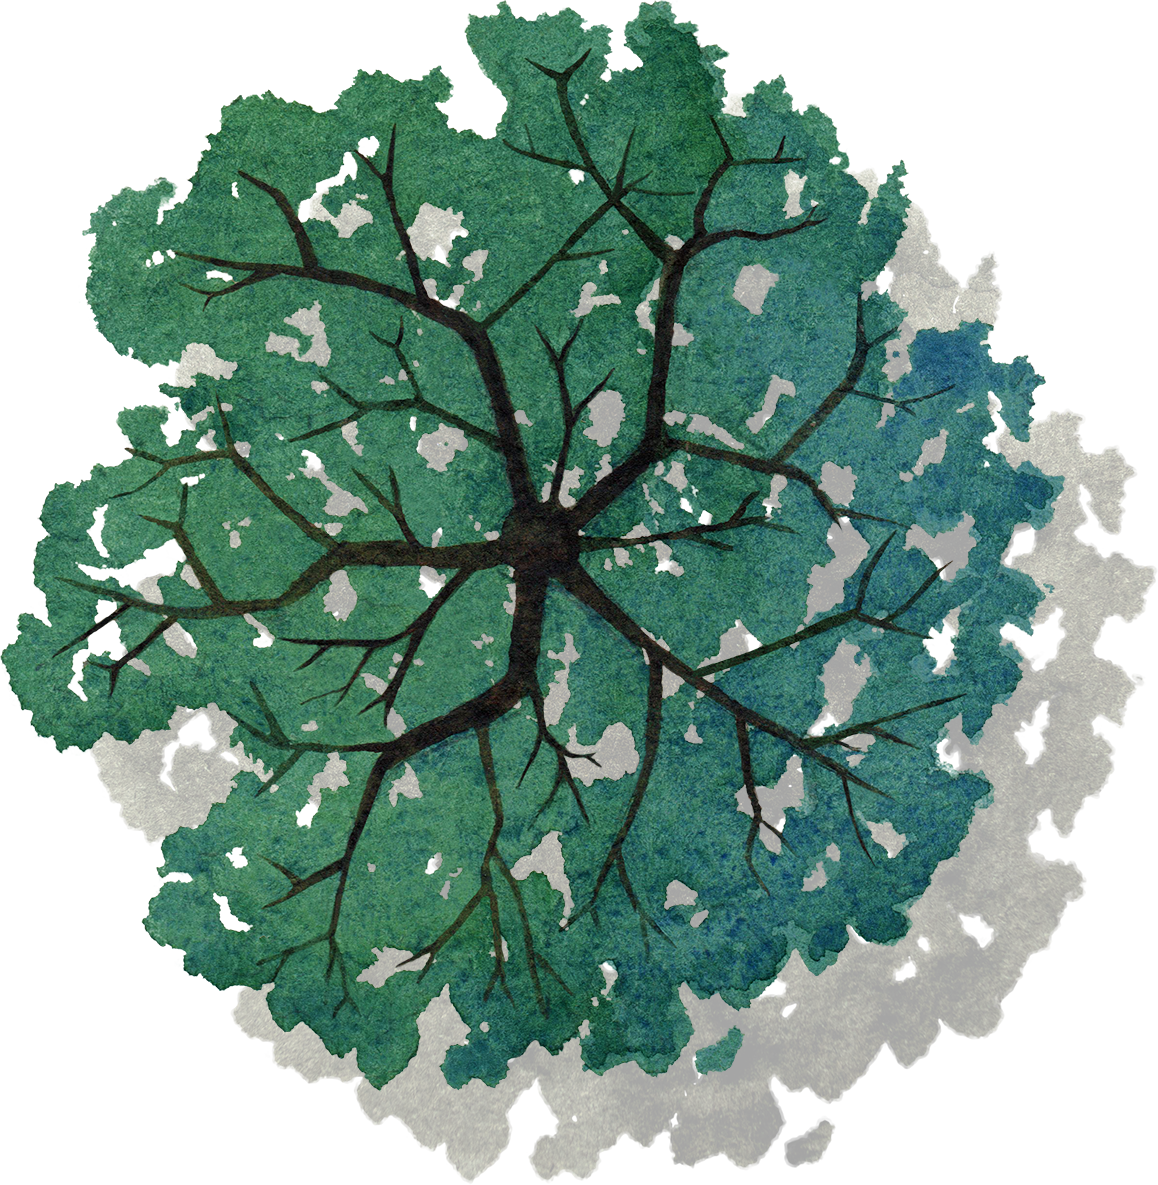 Tree png top view. Plan painted green of